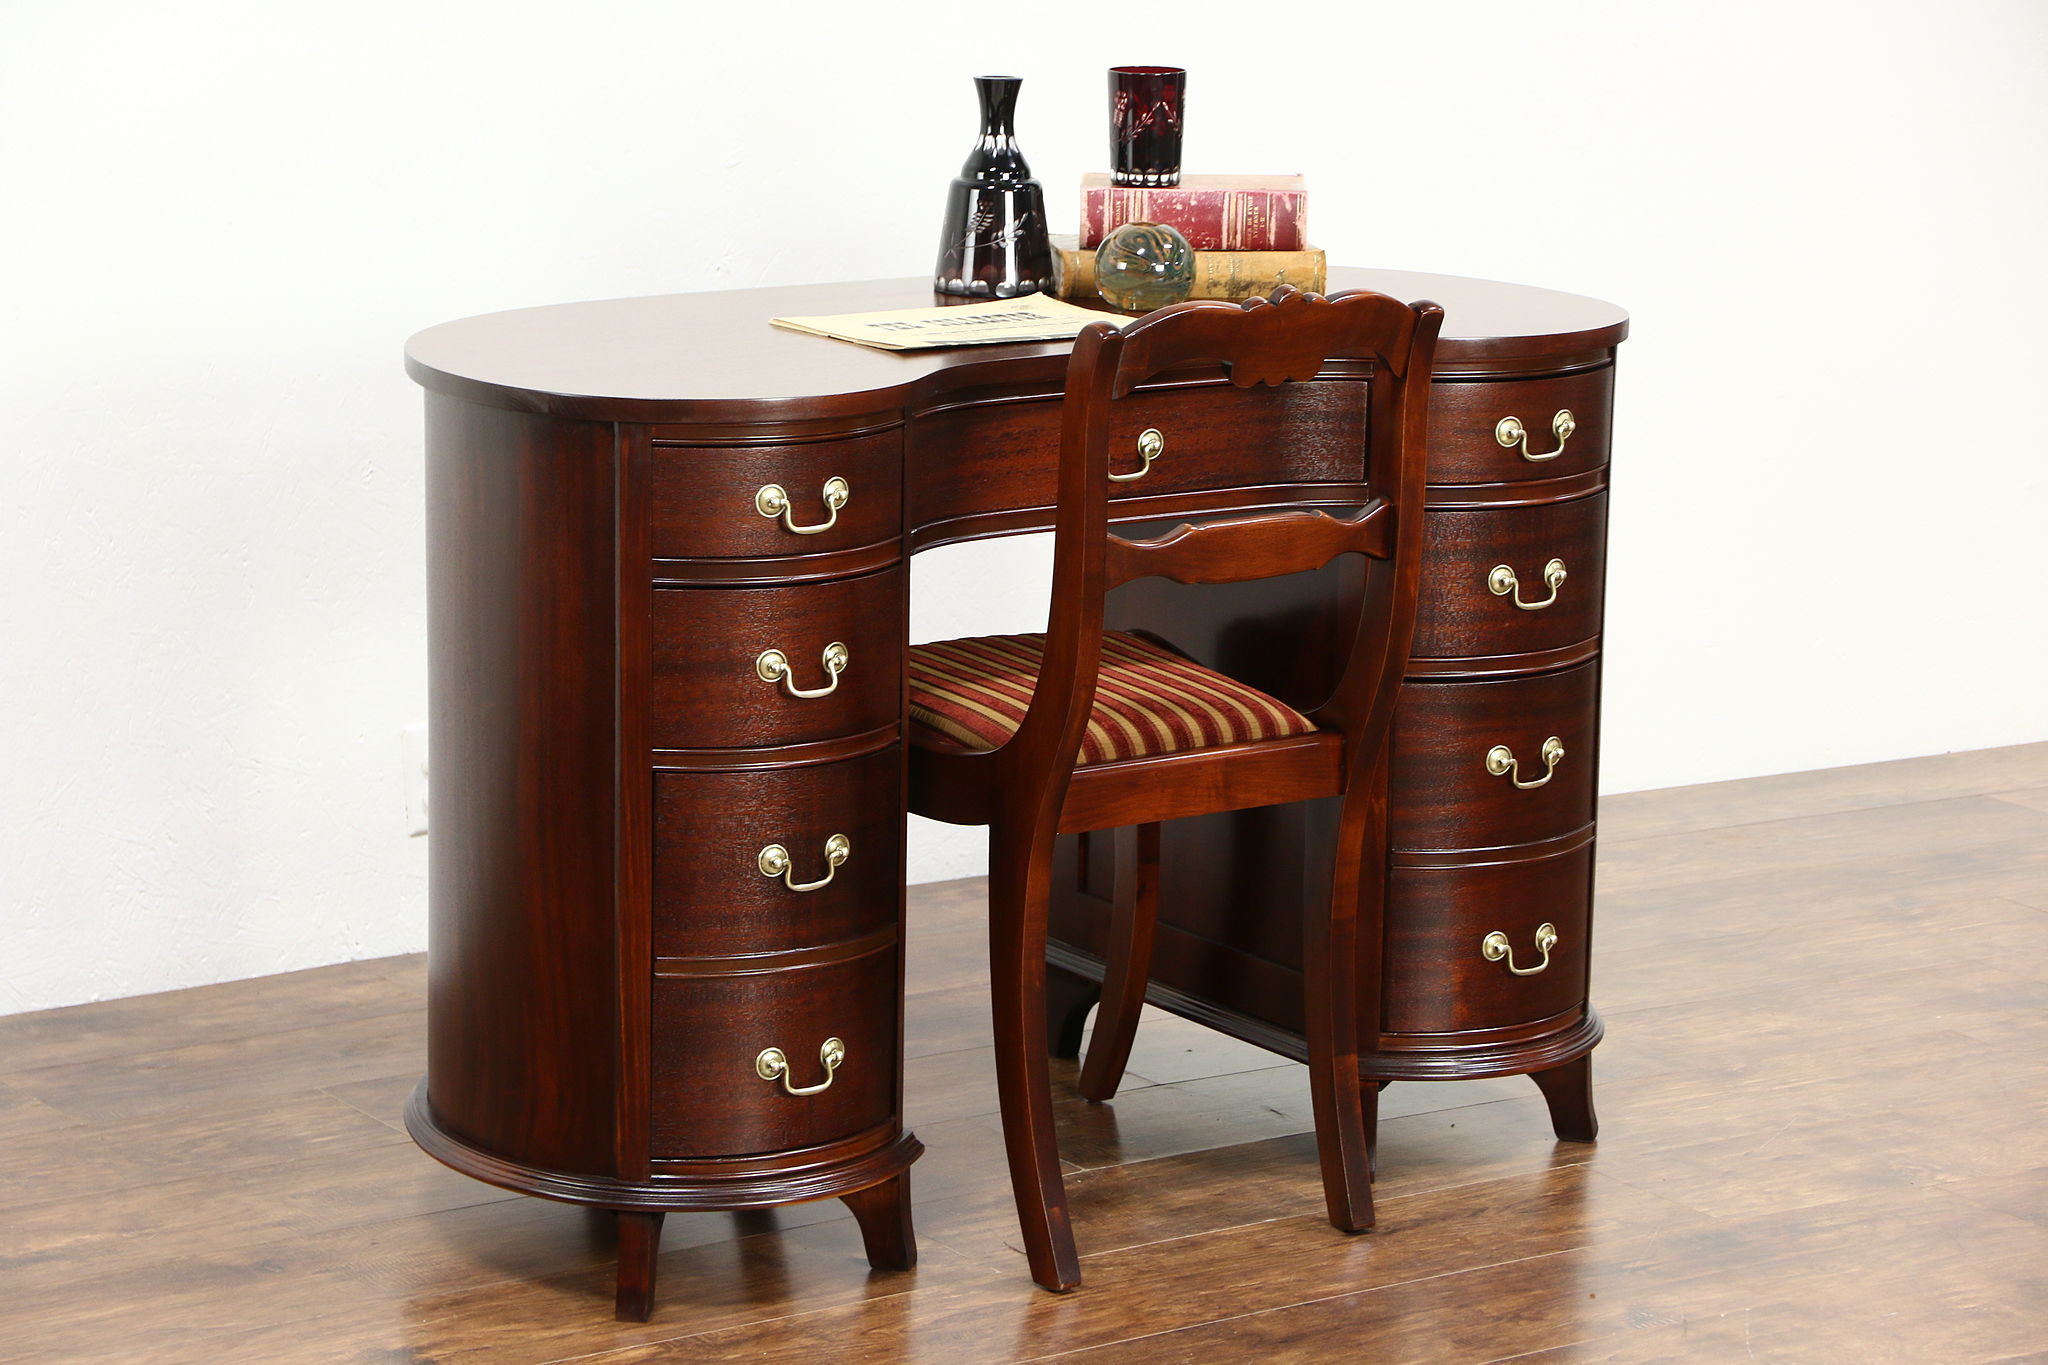 SOLD  Mahogany 1950 Vintage Kidney Desk  Chair Library